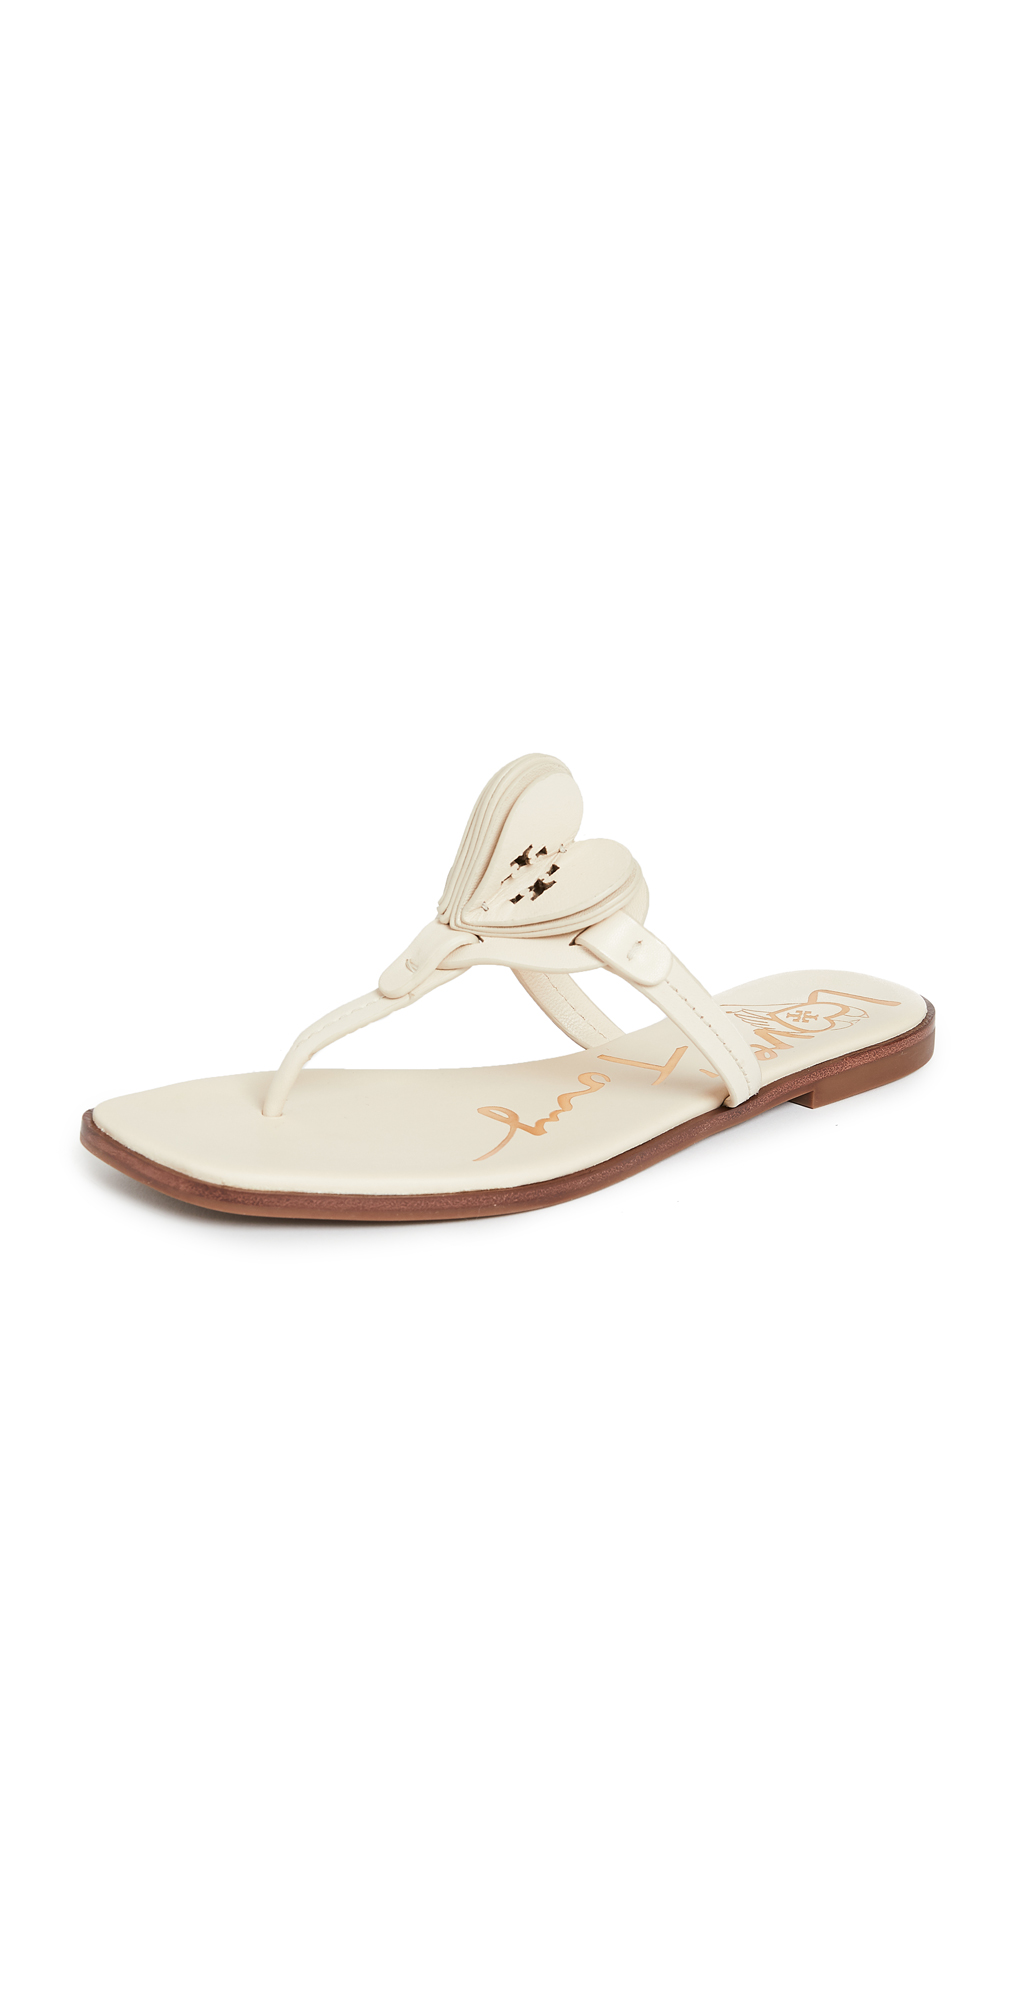 Tory Burch Heart Thong Sandals